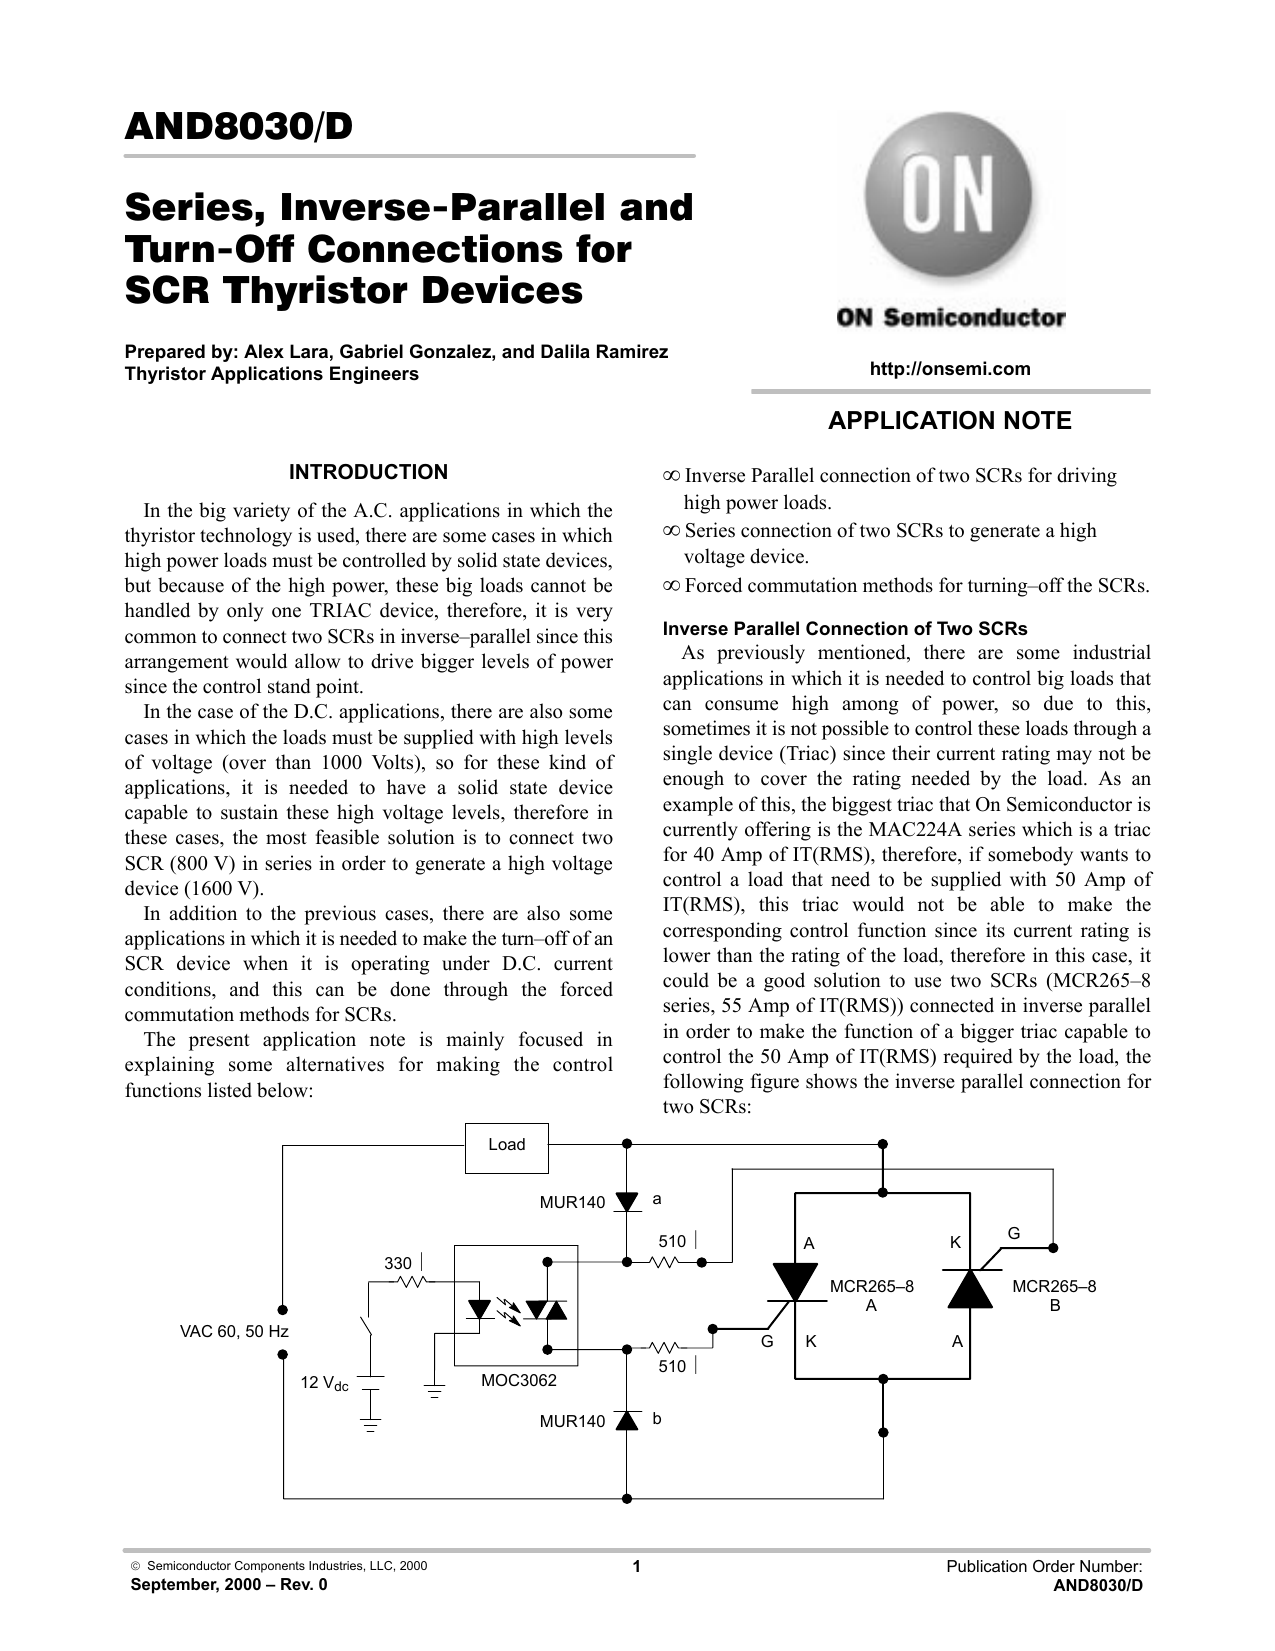 Application Note On Semiconductor Diac Applications